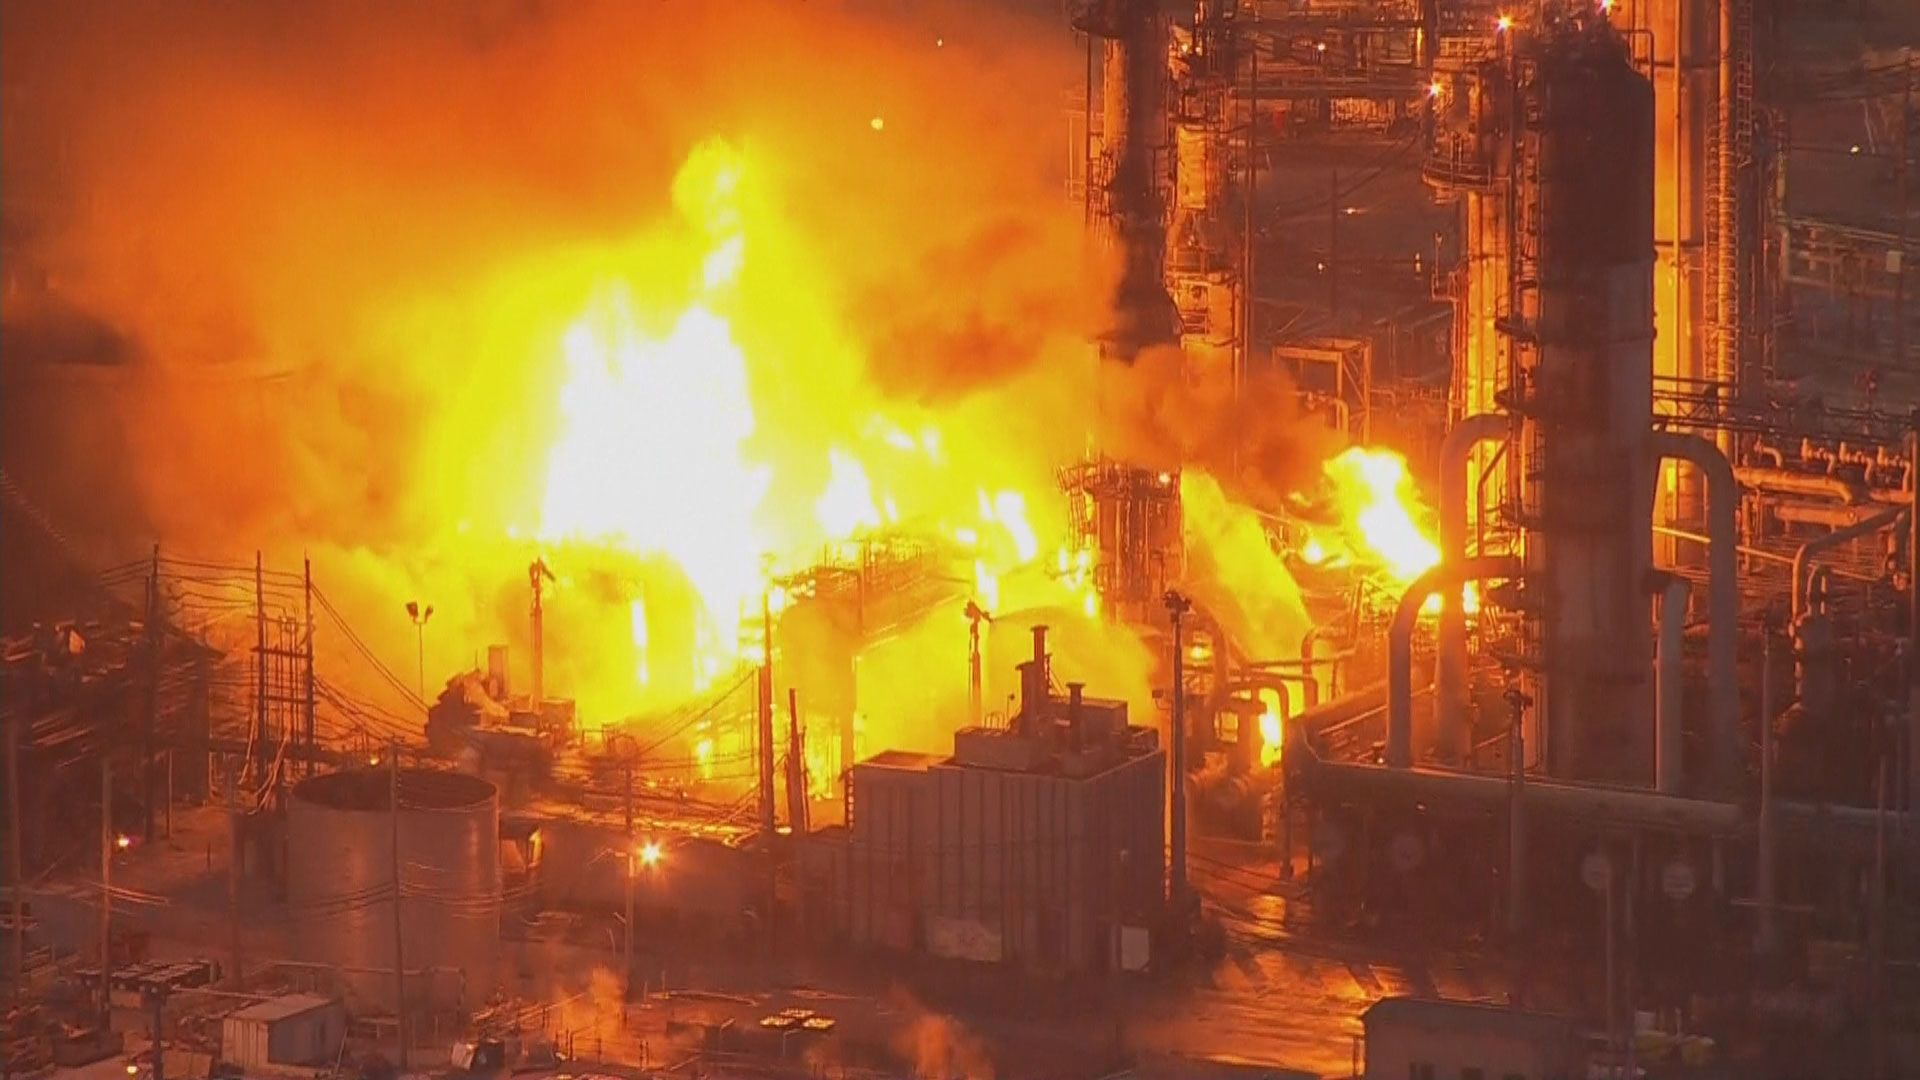 Watch the exact moment of the shocking explosion at a refinery in South Philadelphia